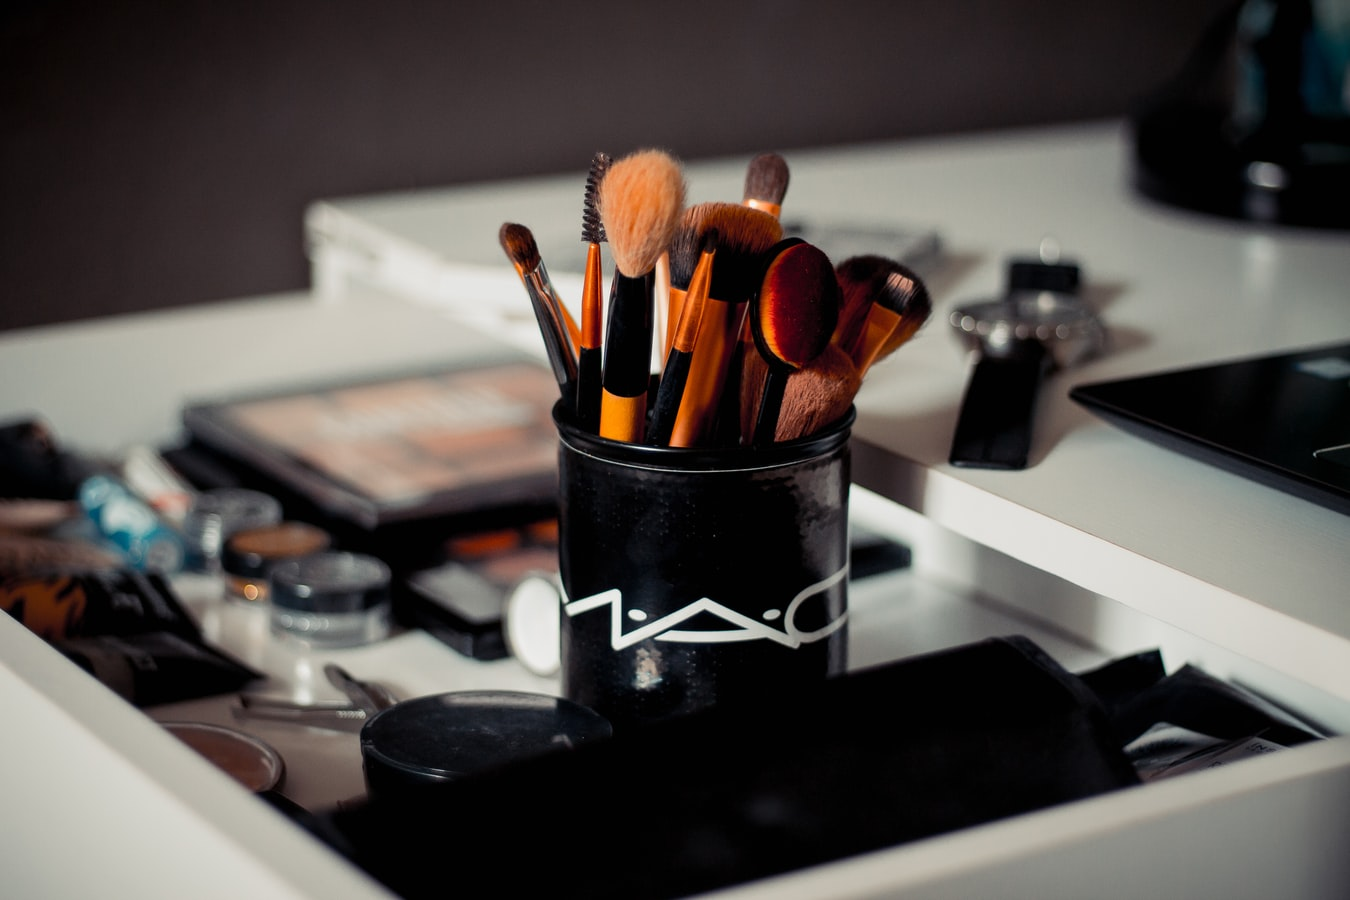 Check out How To Shop For The Best Makeup Brushes at https://makeuptutorials.com/how-to-shop-for-the-best-makeup-brushes/